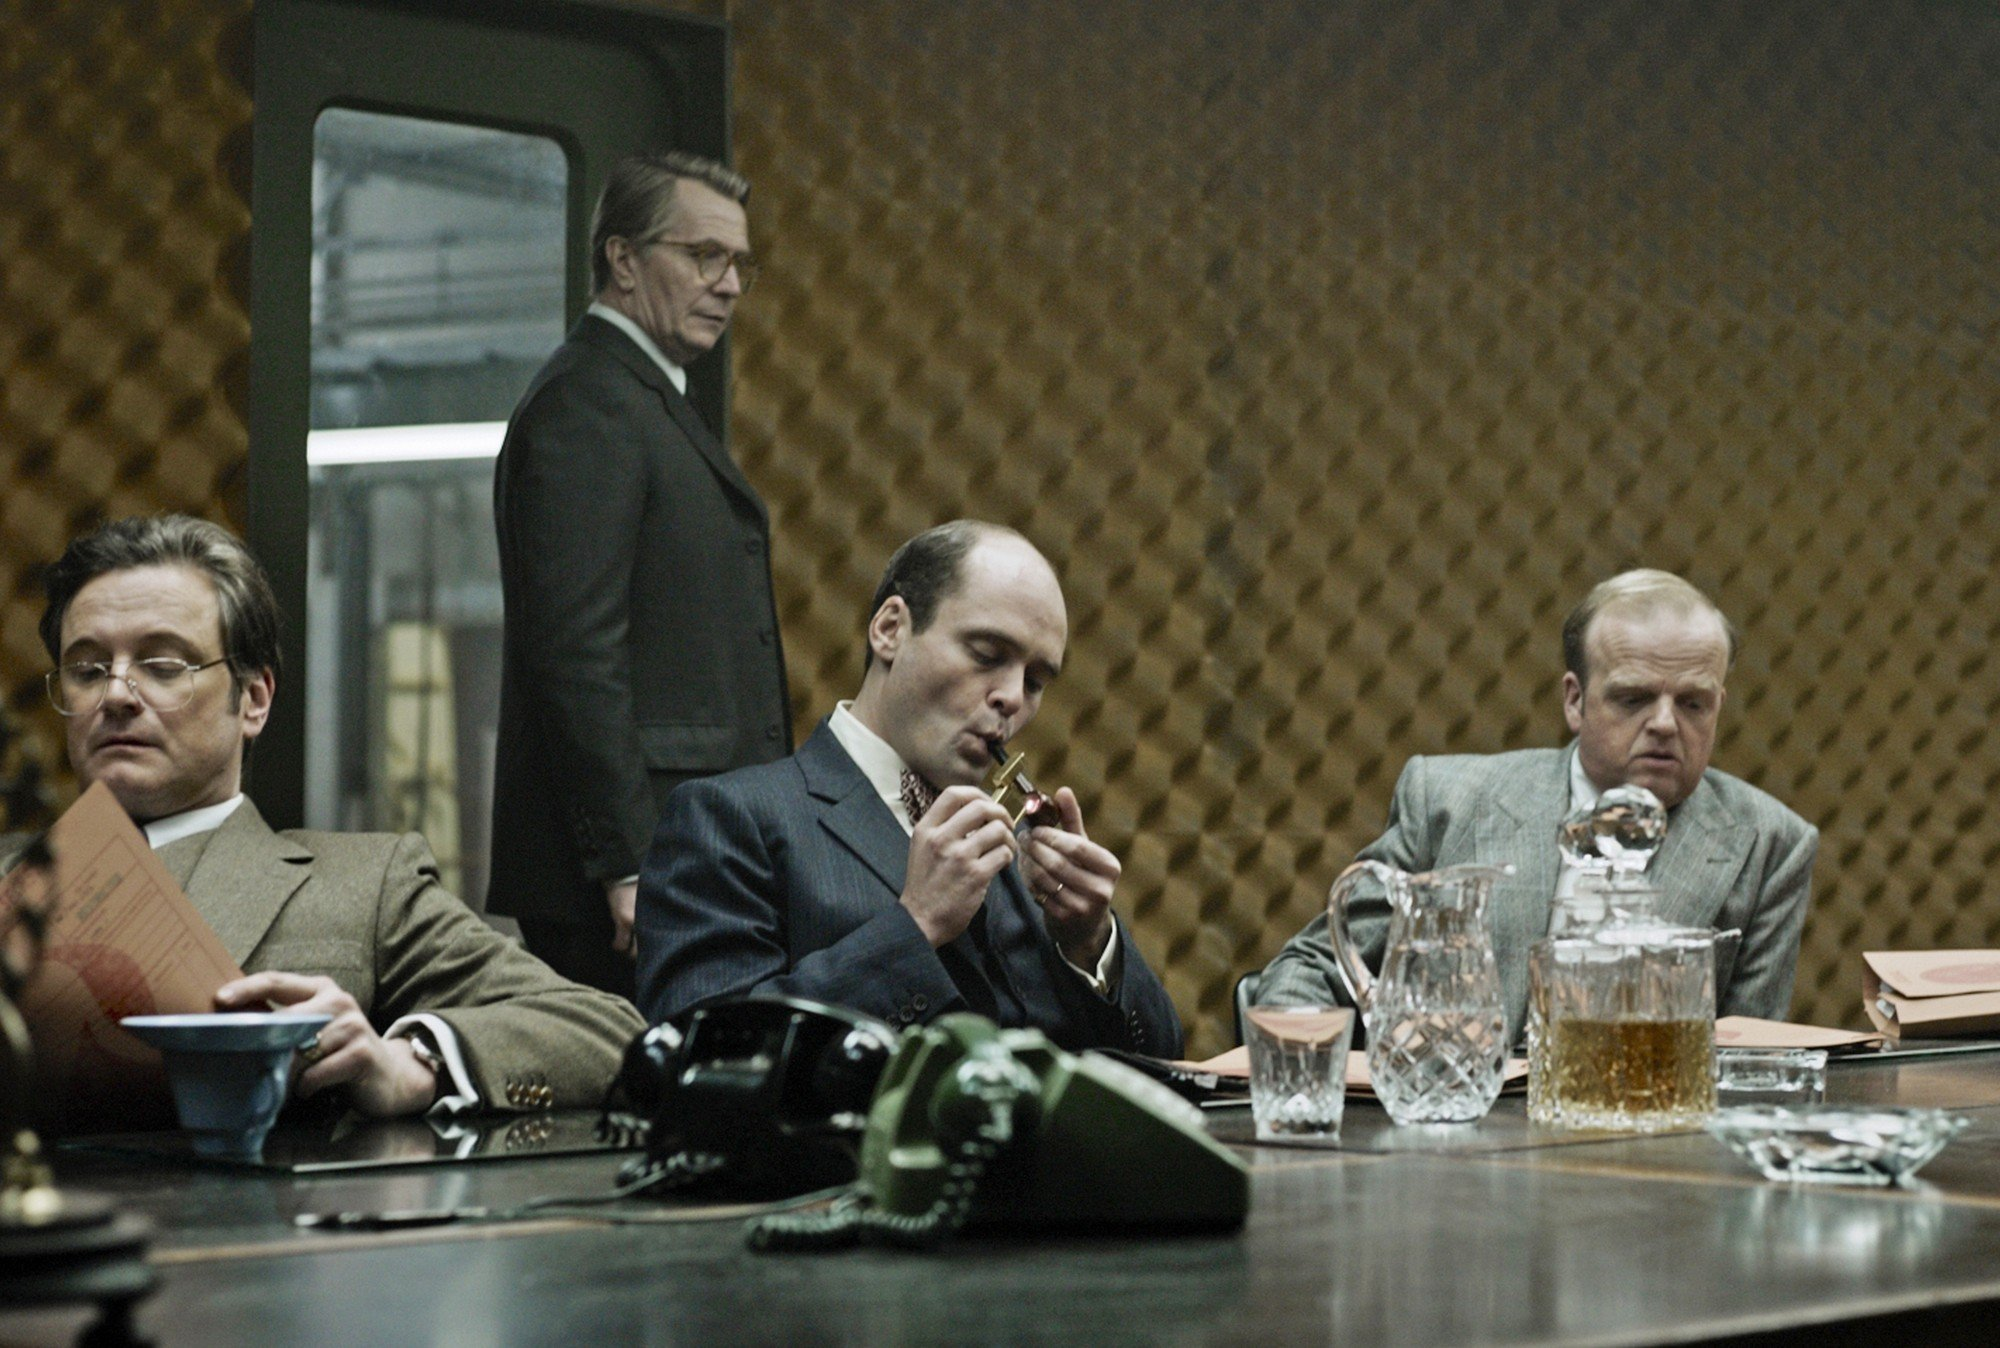 Understanding Screenwriting #90: Tinker Tailor Soldier Spy, The Adventures of Tintin, Contraband, & More